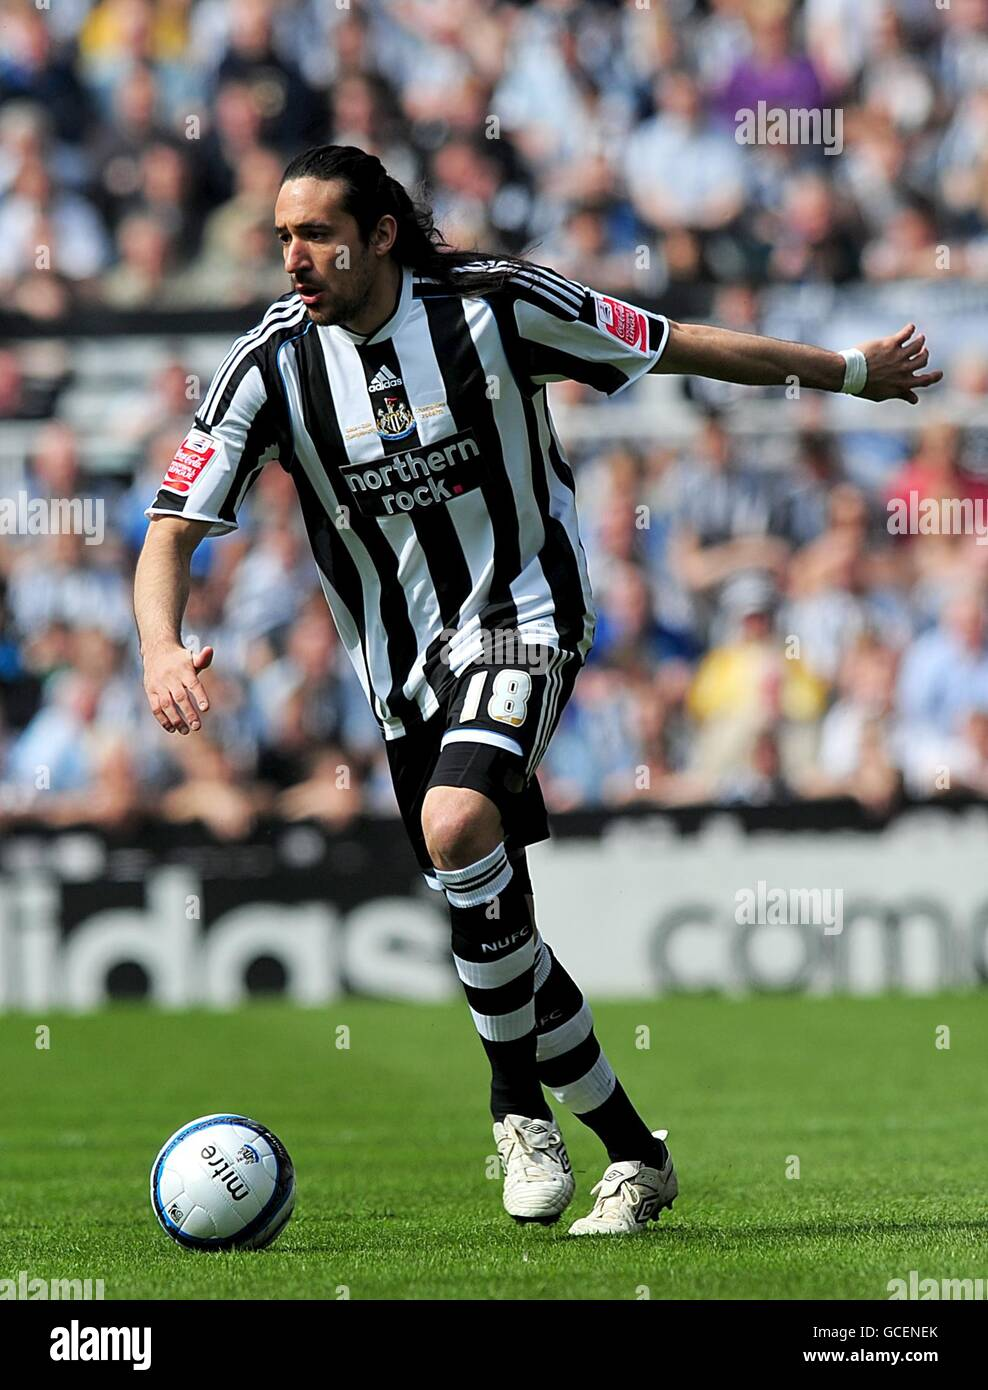 Soccer - Coca-Cola Football League Championship - Newcastle United v Ipswich Town - St James' Park - Stock Image